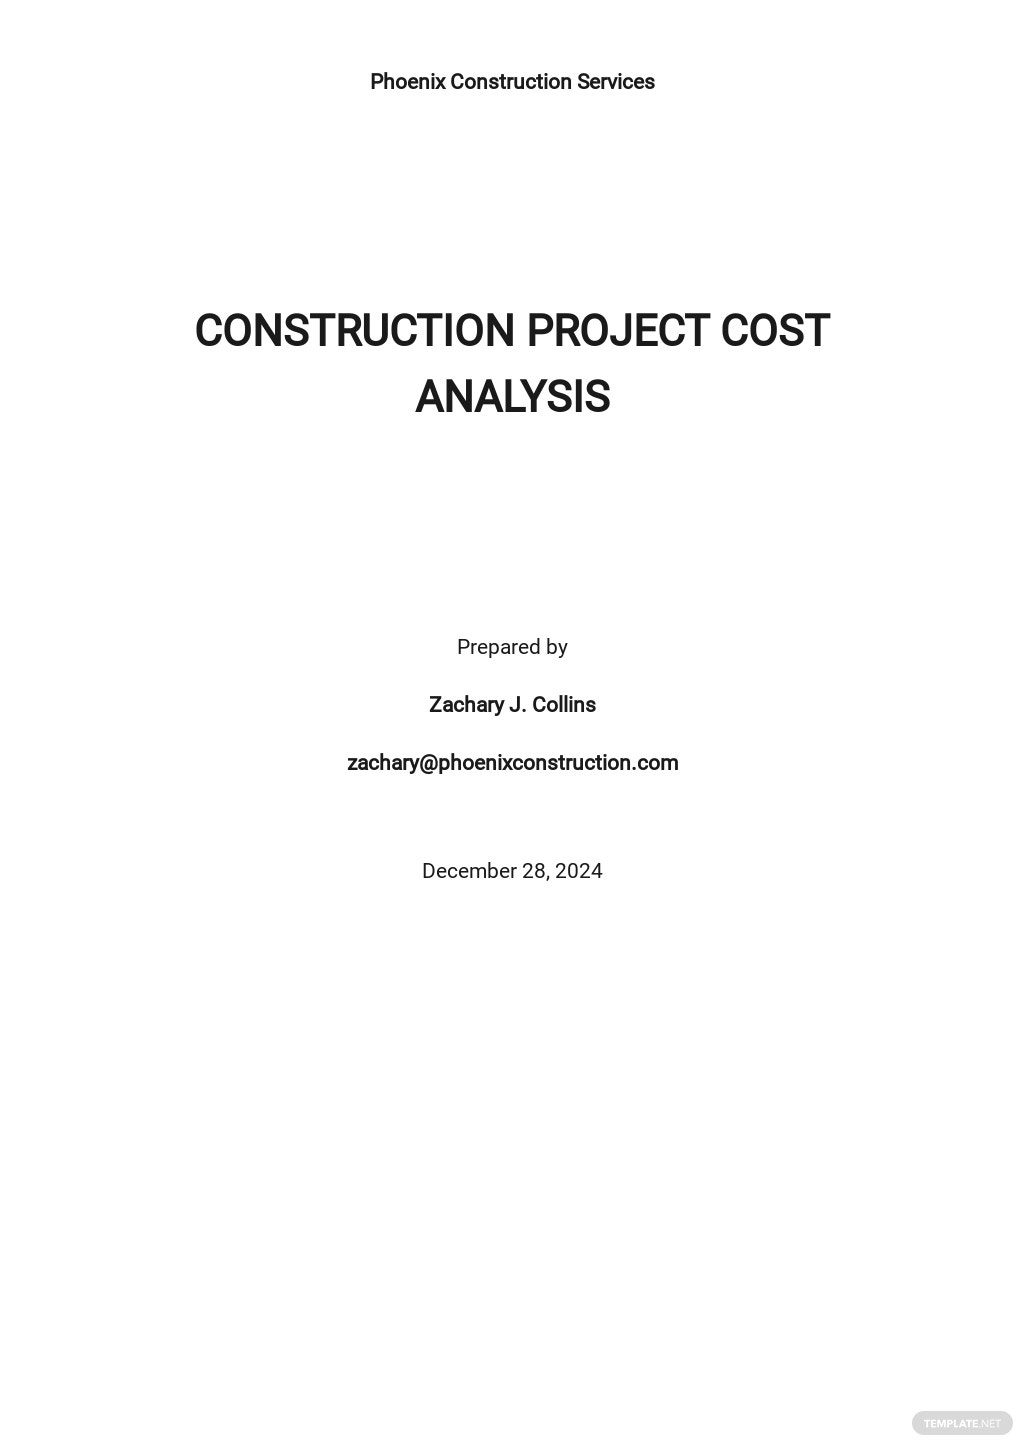 Sample Construction Project Cost Analysis Template